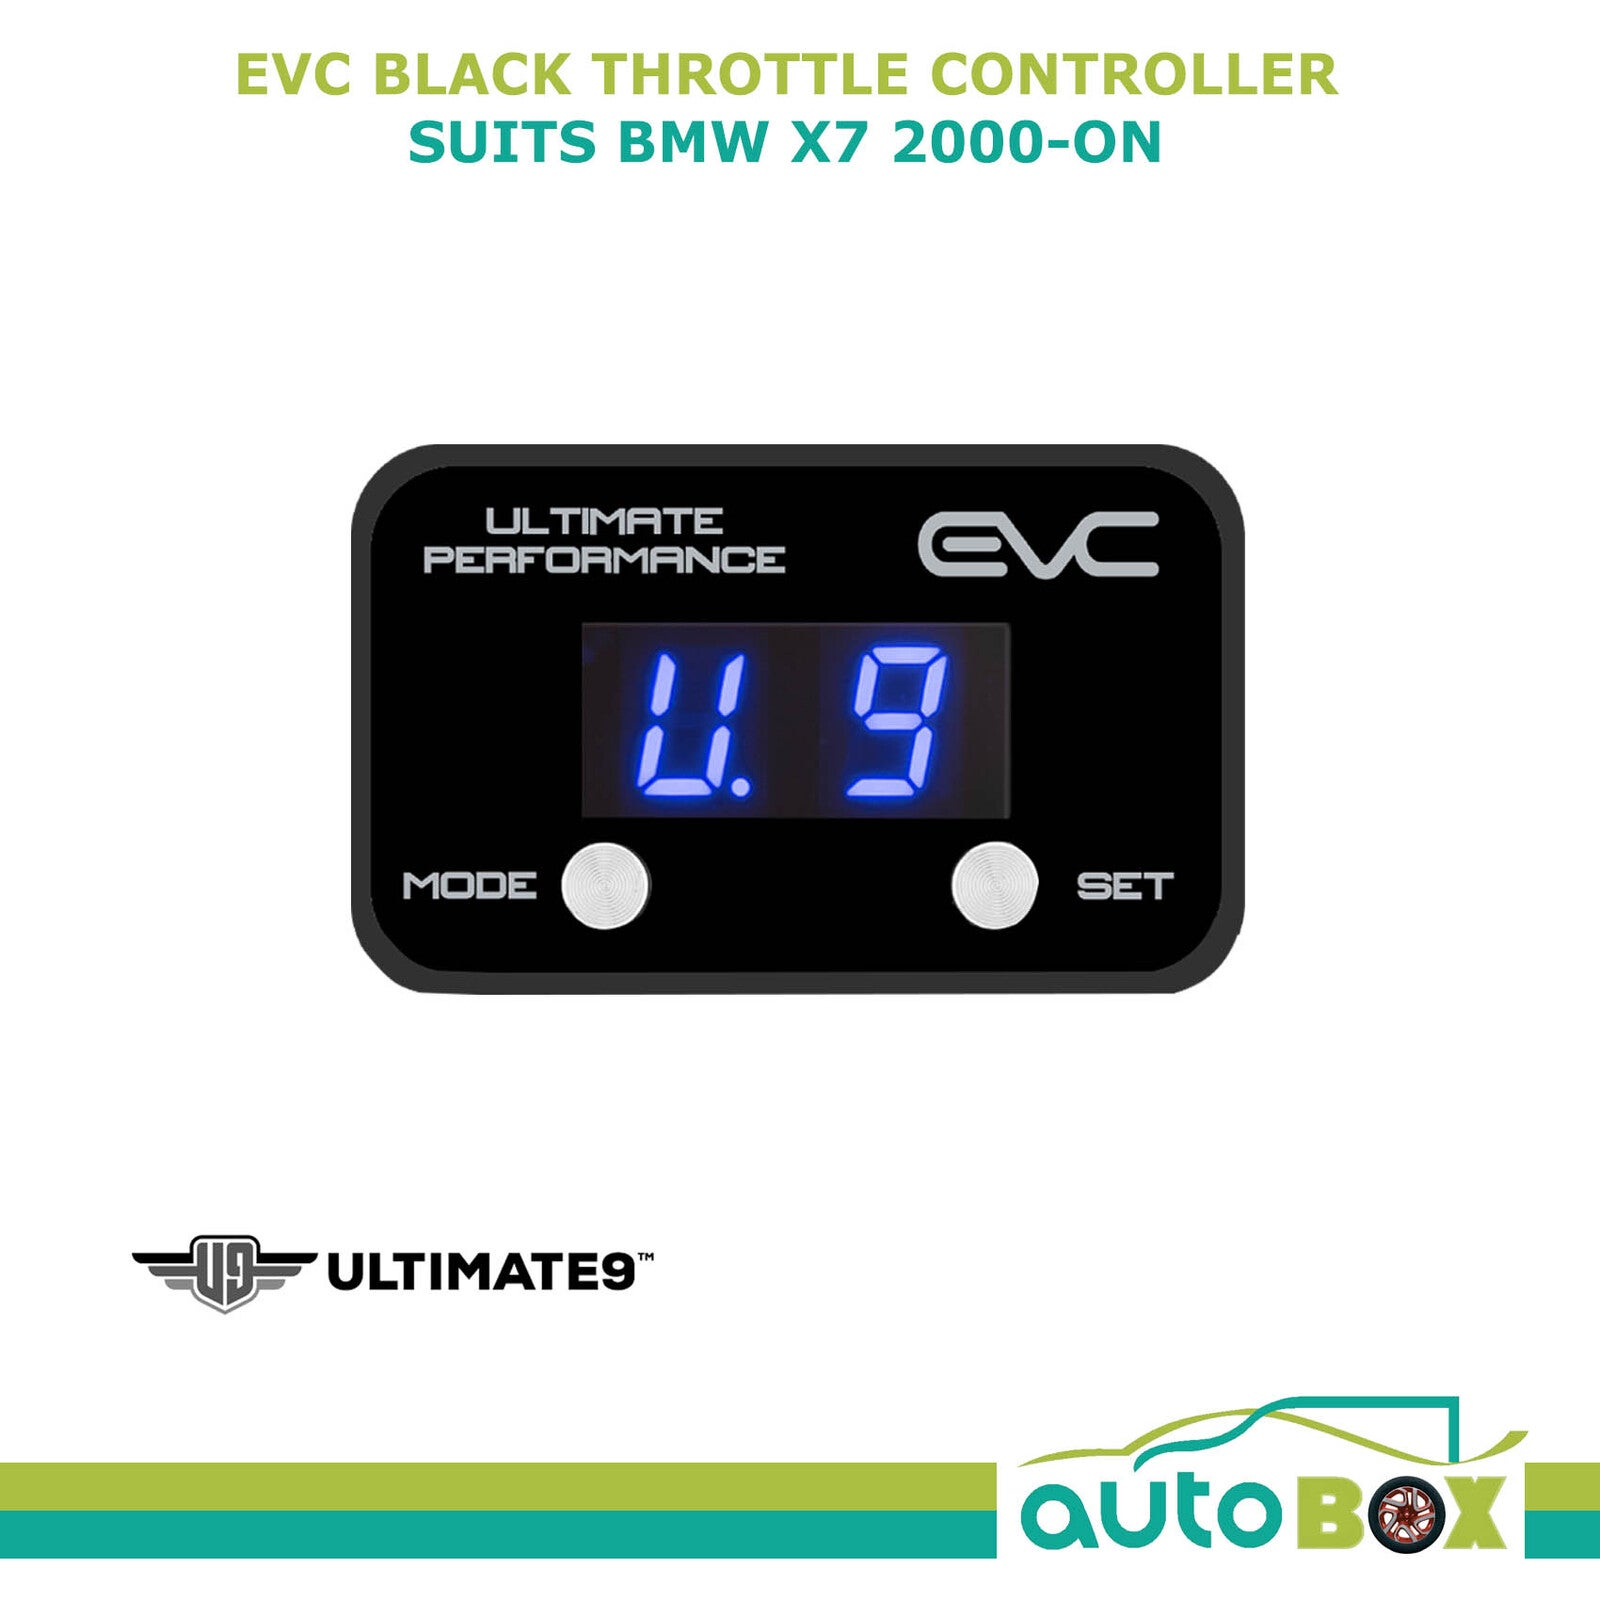 EVC BLACK iDRIVE ELECTRONIC THROTTLE CONTROLLER FOR BMW X7 2003 - ON WINDBOOSTER